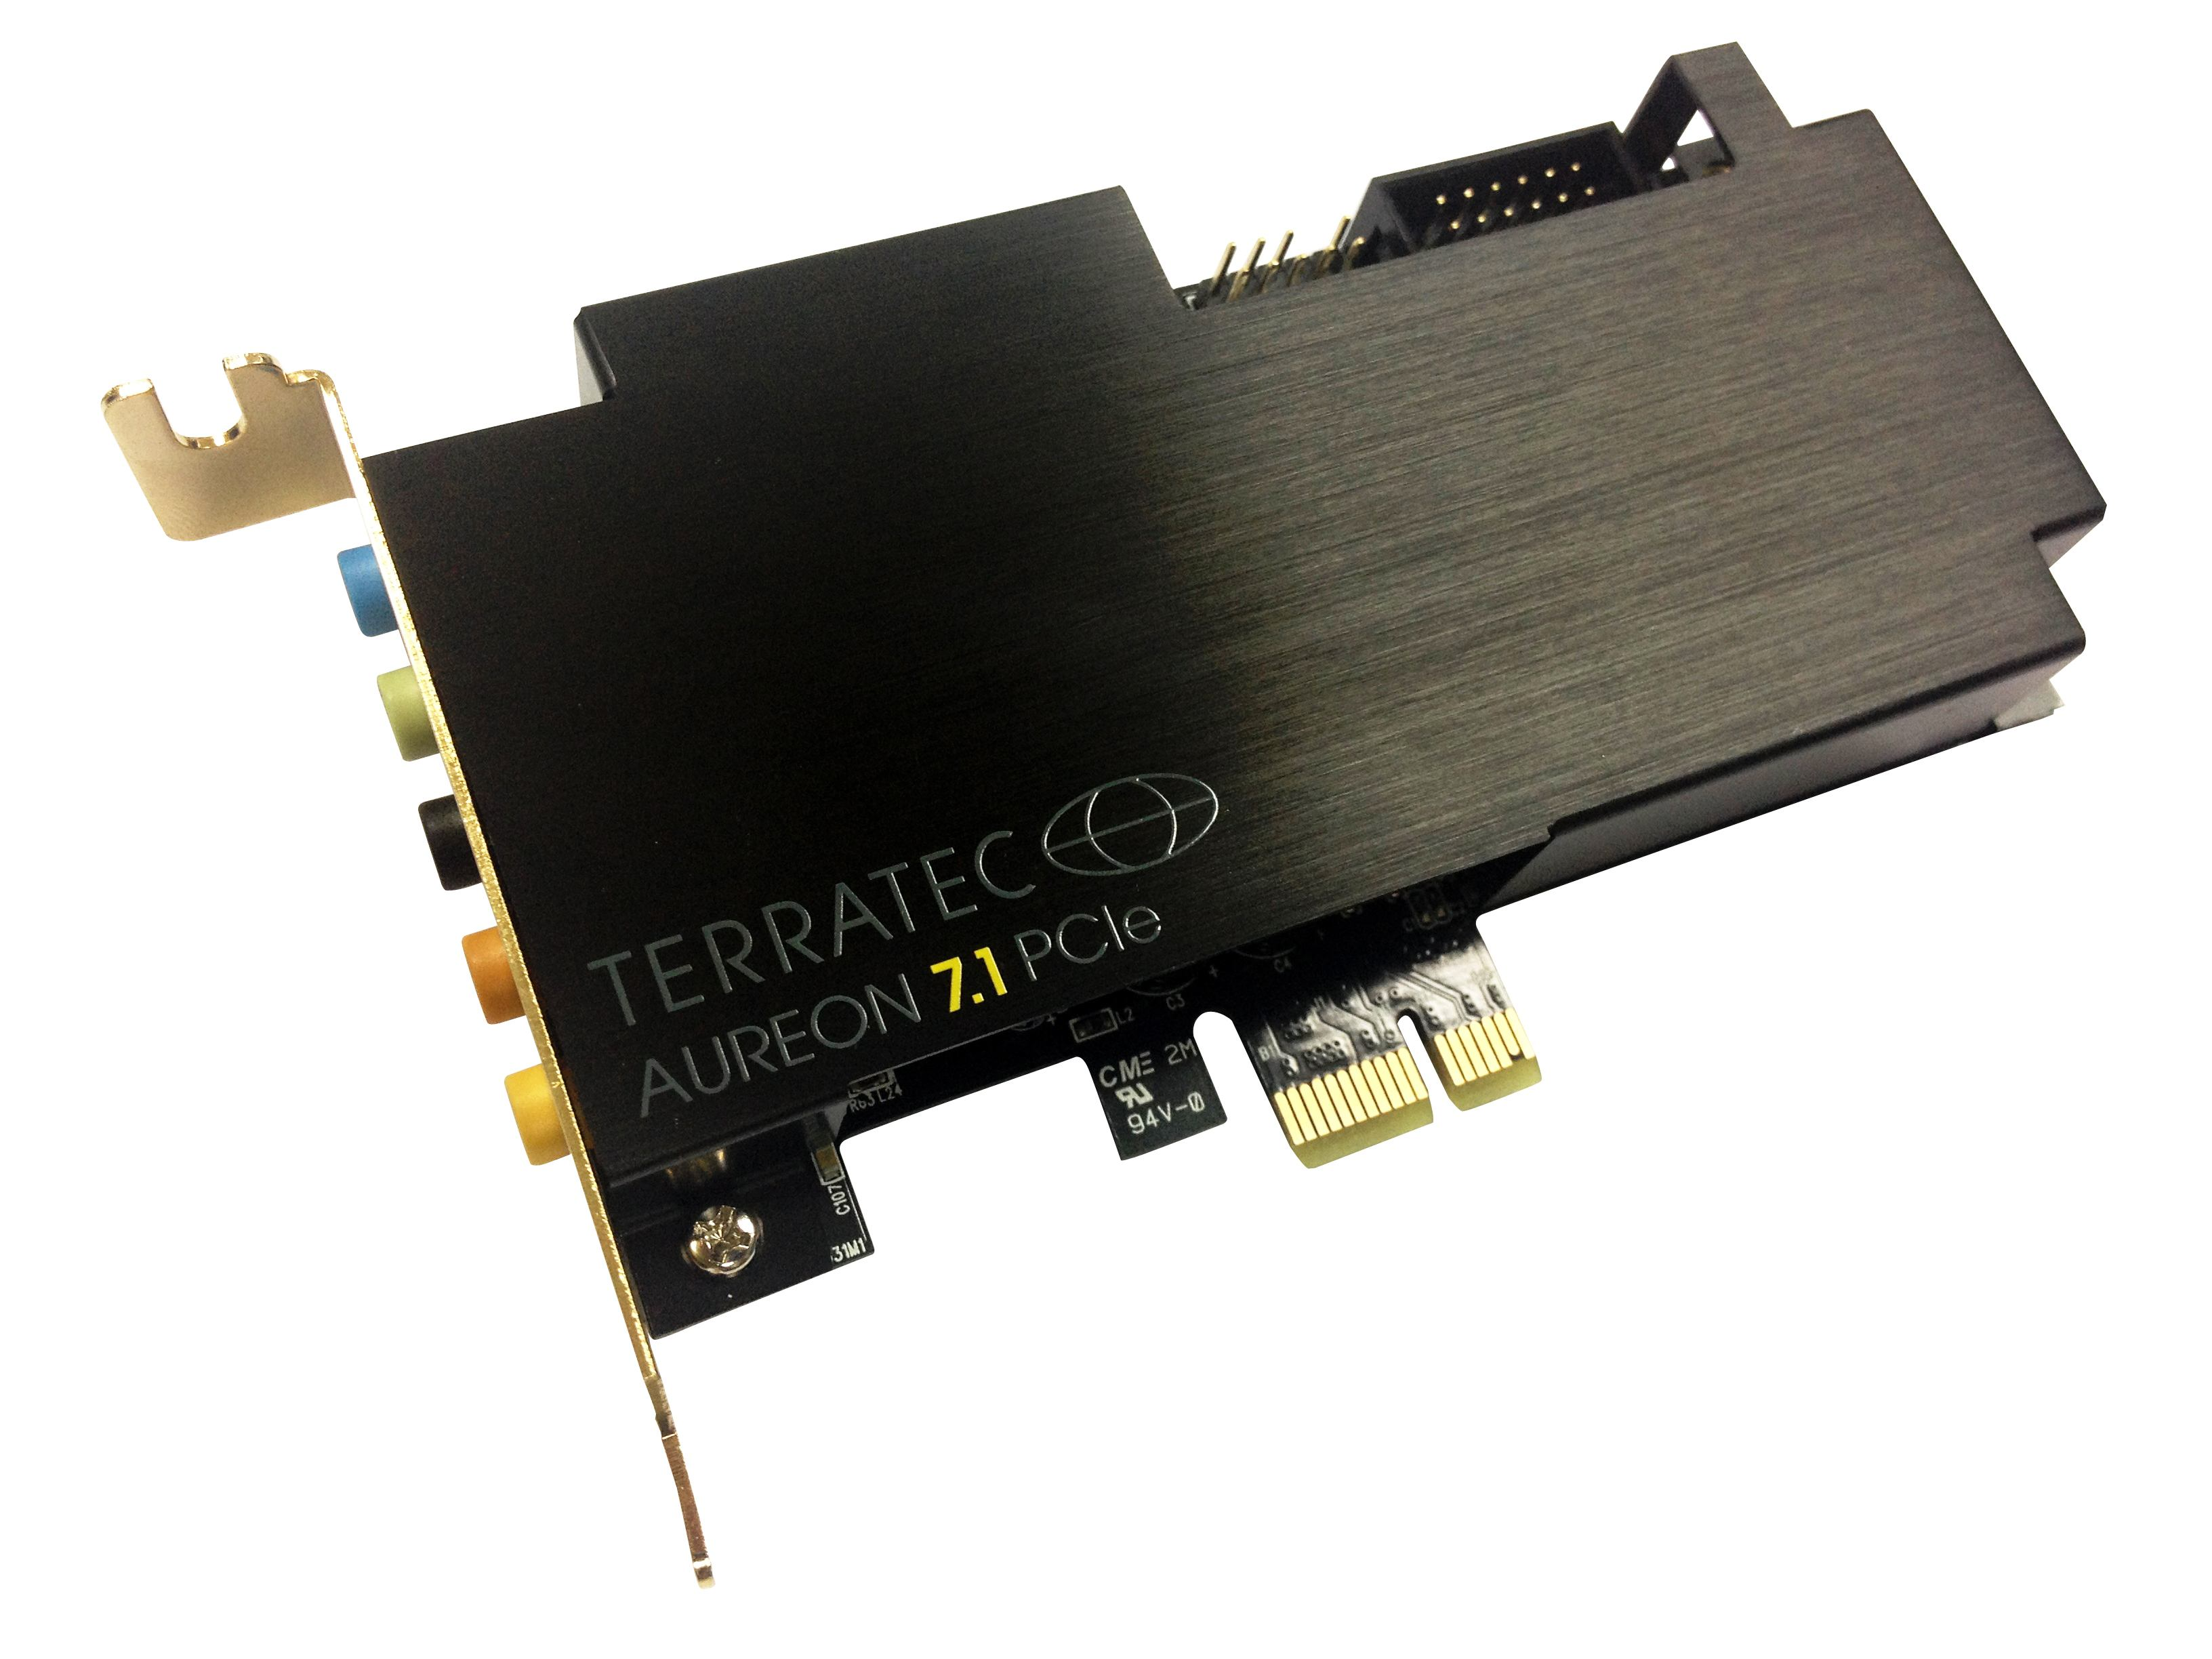 AUREON 7.1 PCI AUDIO DRIVER (2019)